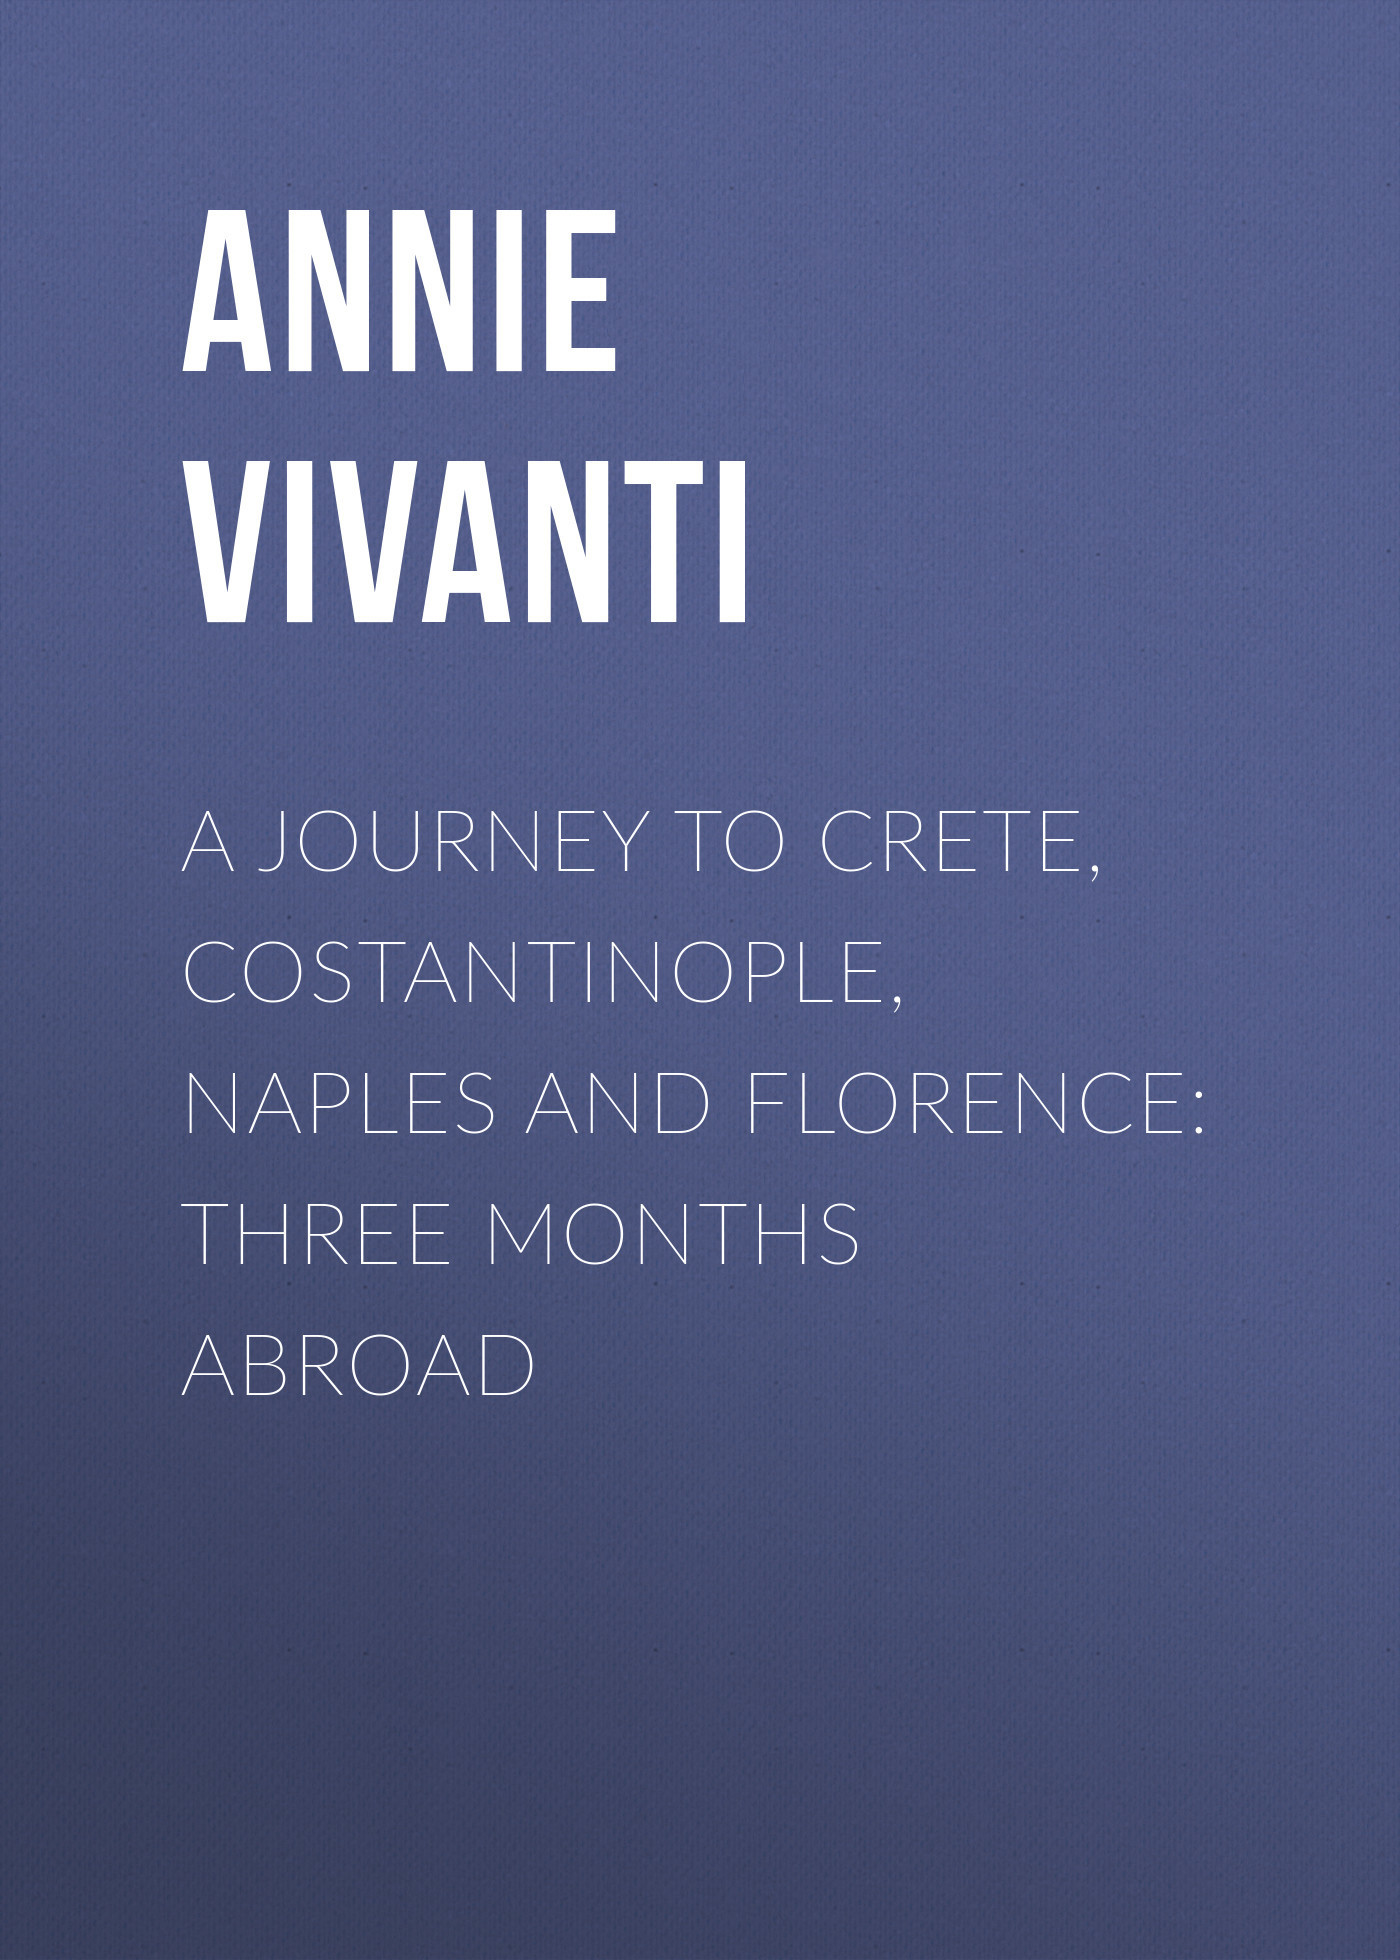 A Journey to Crete, Costantinople, Naples and Florence: Three Months Abroad